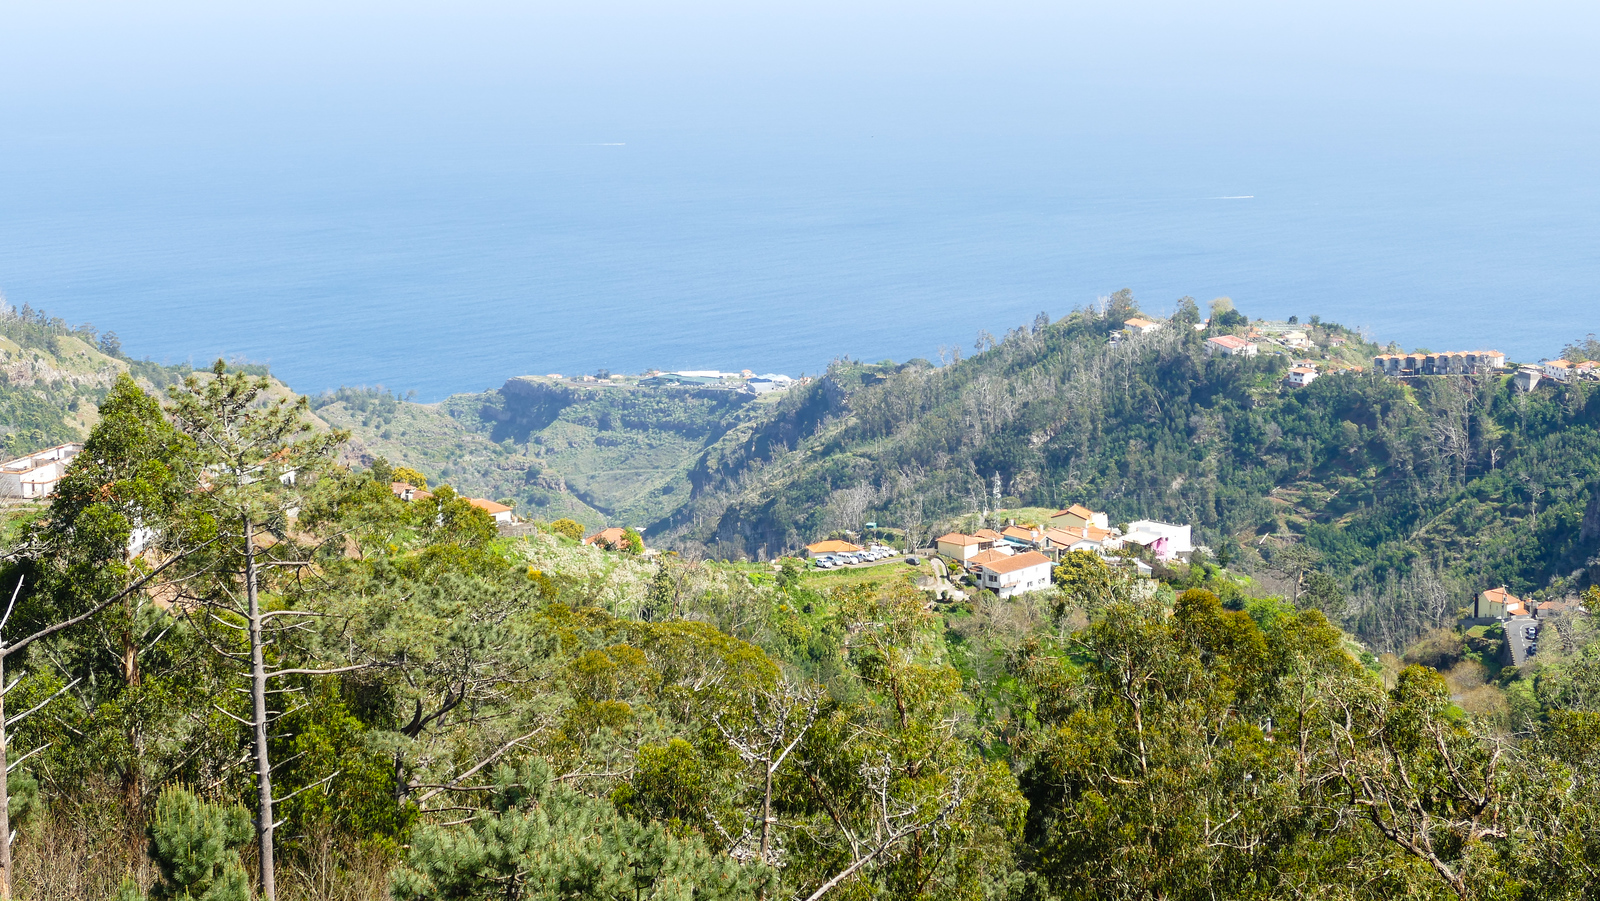 Boomer travel - cruise excursions. The view from Camacho on a levada walking cruise excursion in Madeira.